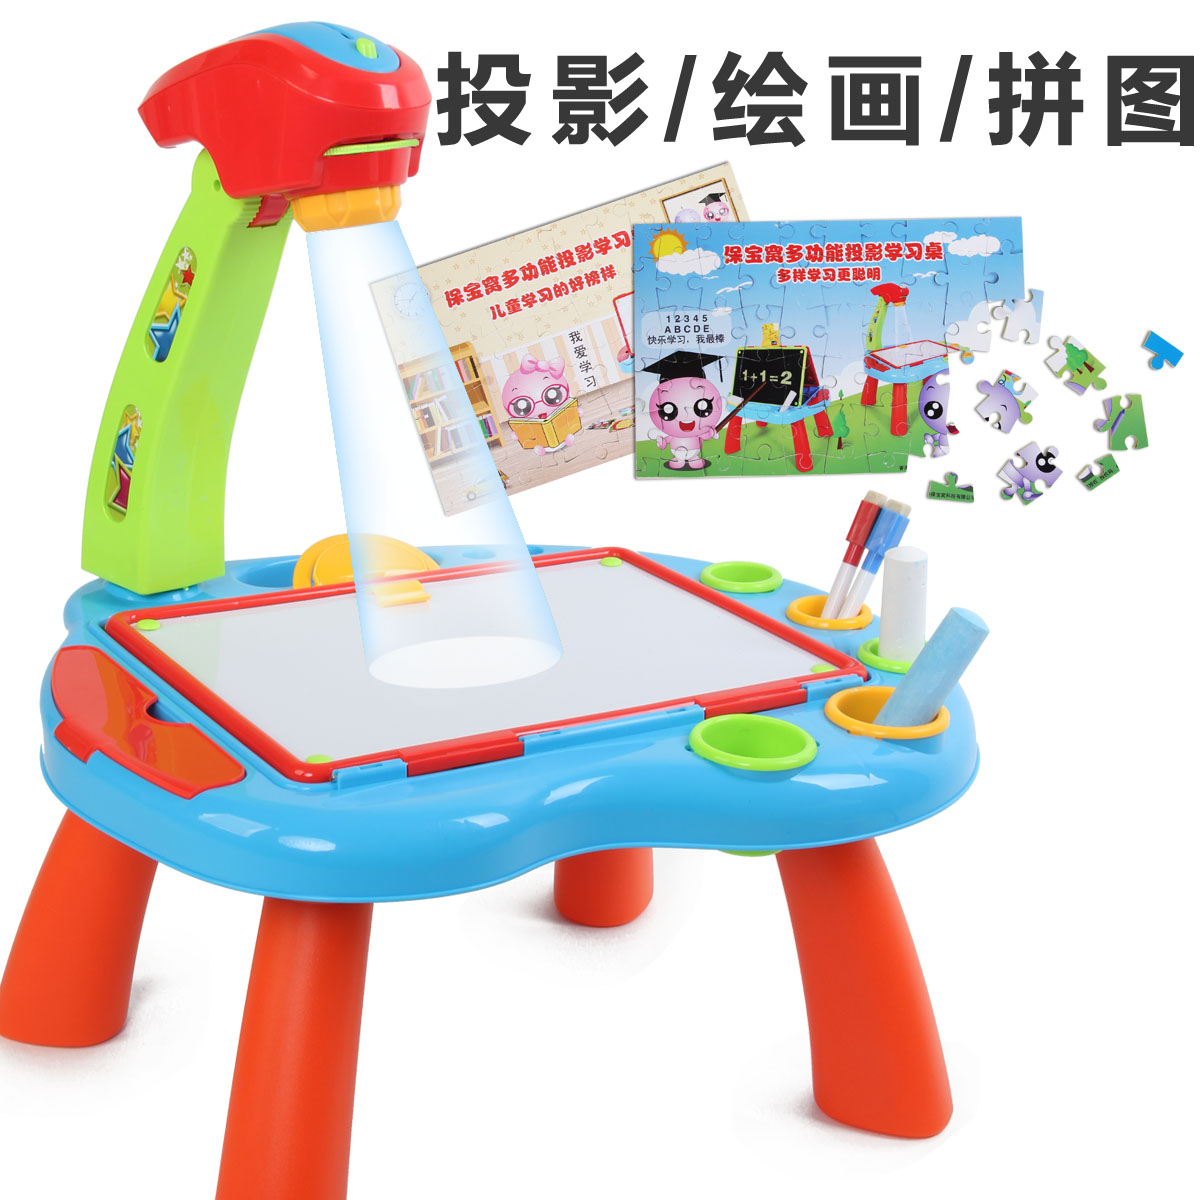 Child furniture study desk multifunctional projection toy table puzzle 3(China (Mainland))